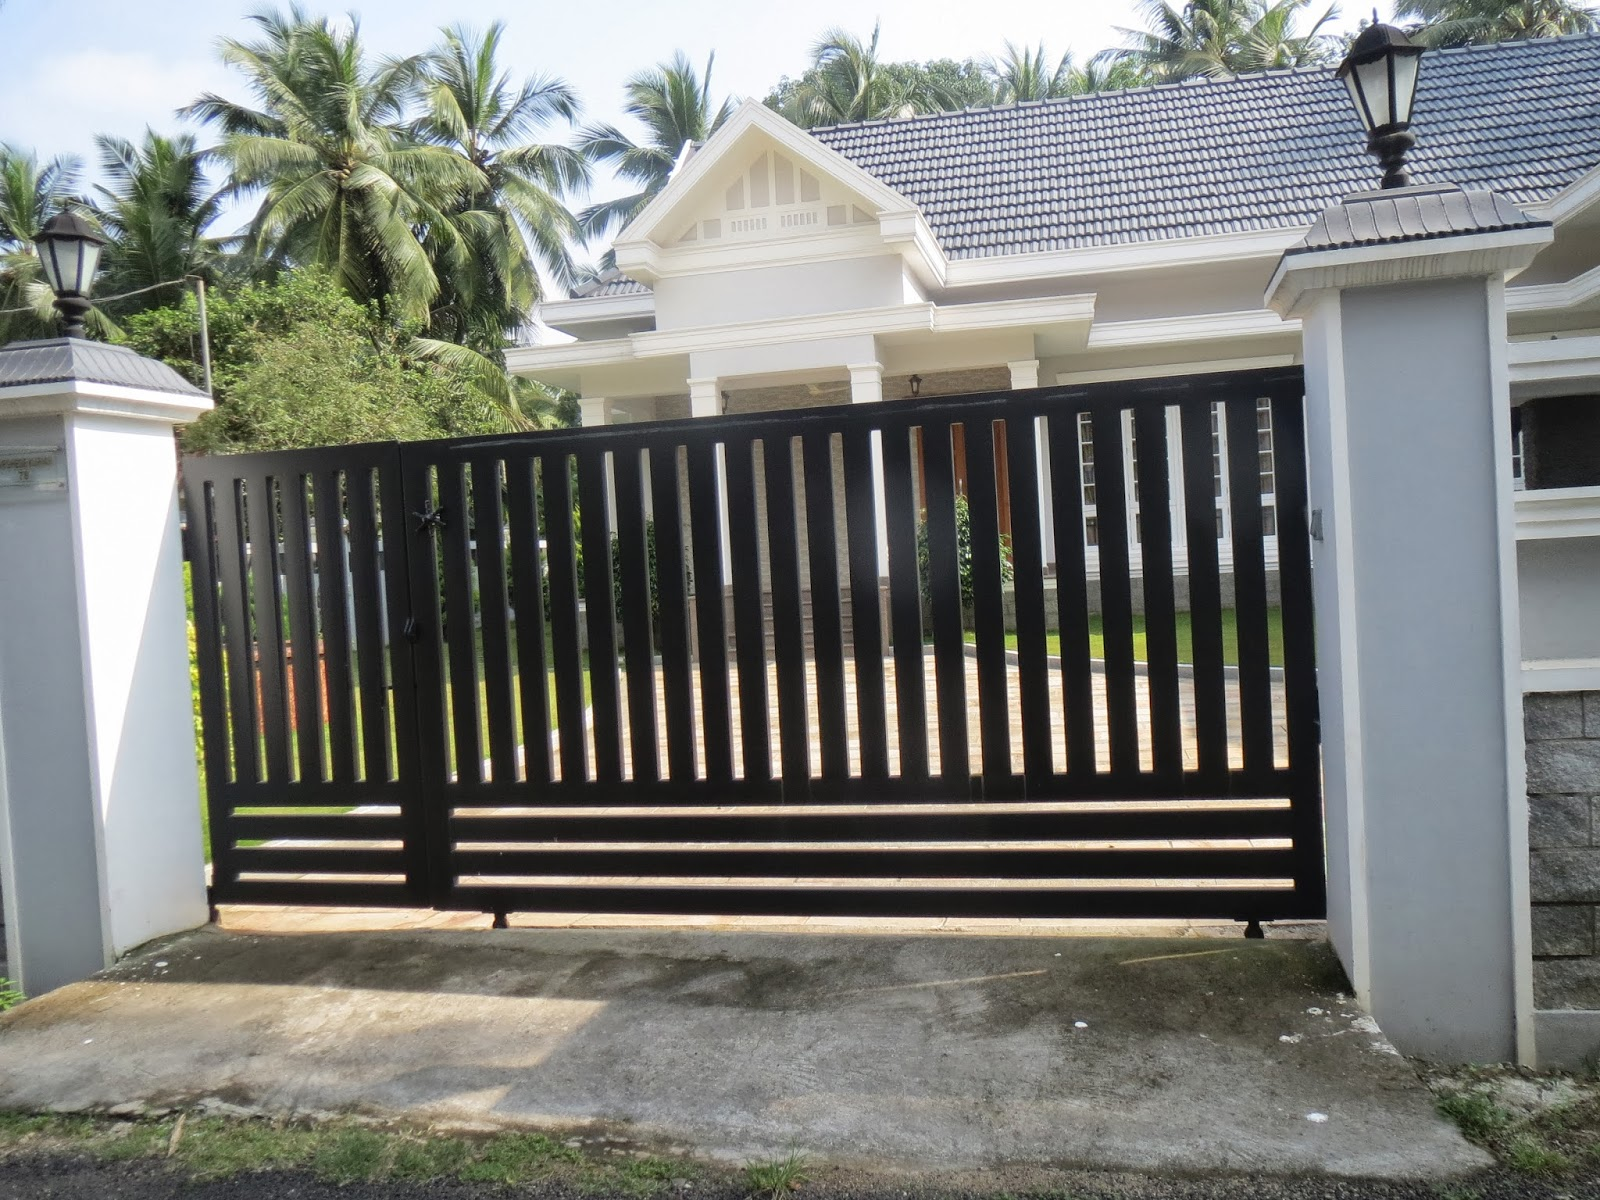 img modern door gate design gates for homes garden security sydney ny the myrtle beach electric ireland driveway iron used mills oregon  - 35+ Gate Design For Small House Philippines Pictures